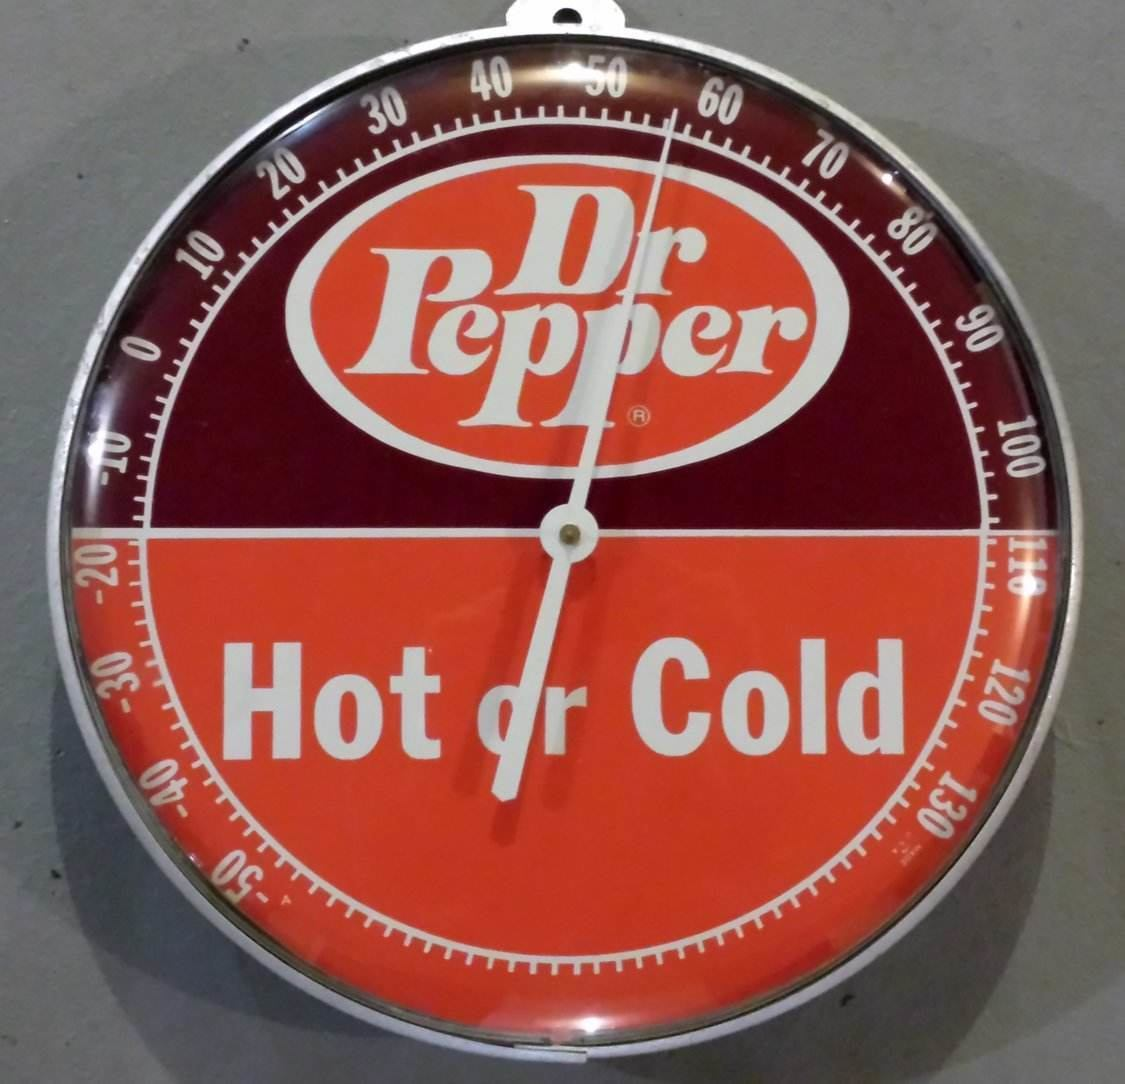 rsz_dr_pepper_12_pam_therm-1.jpg